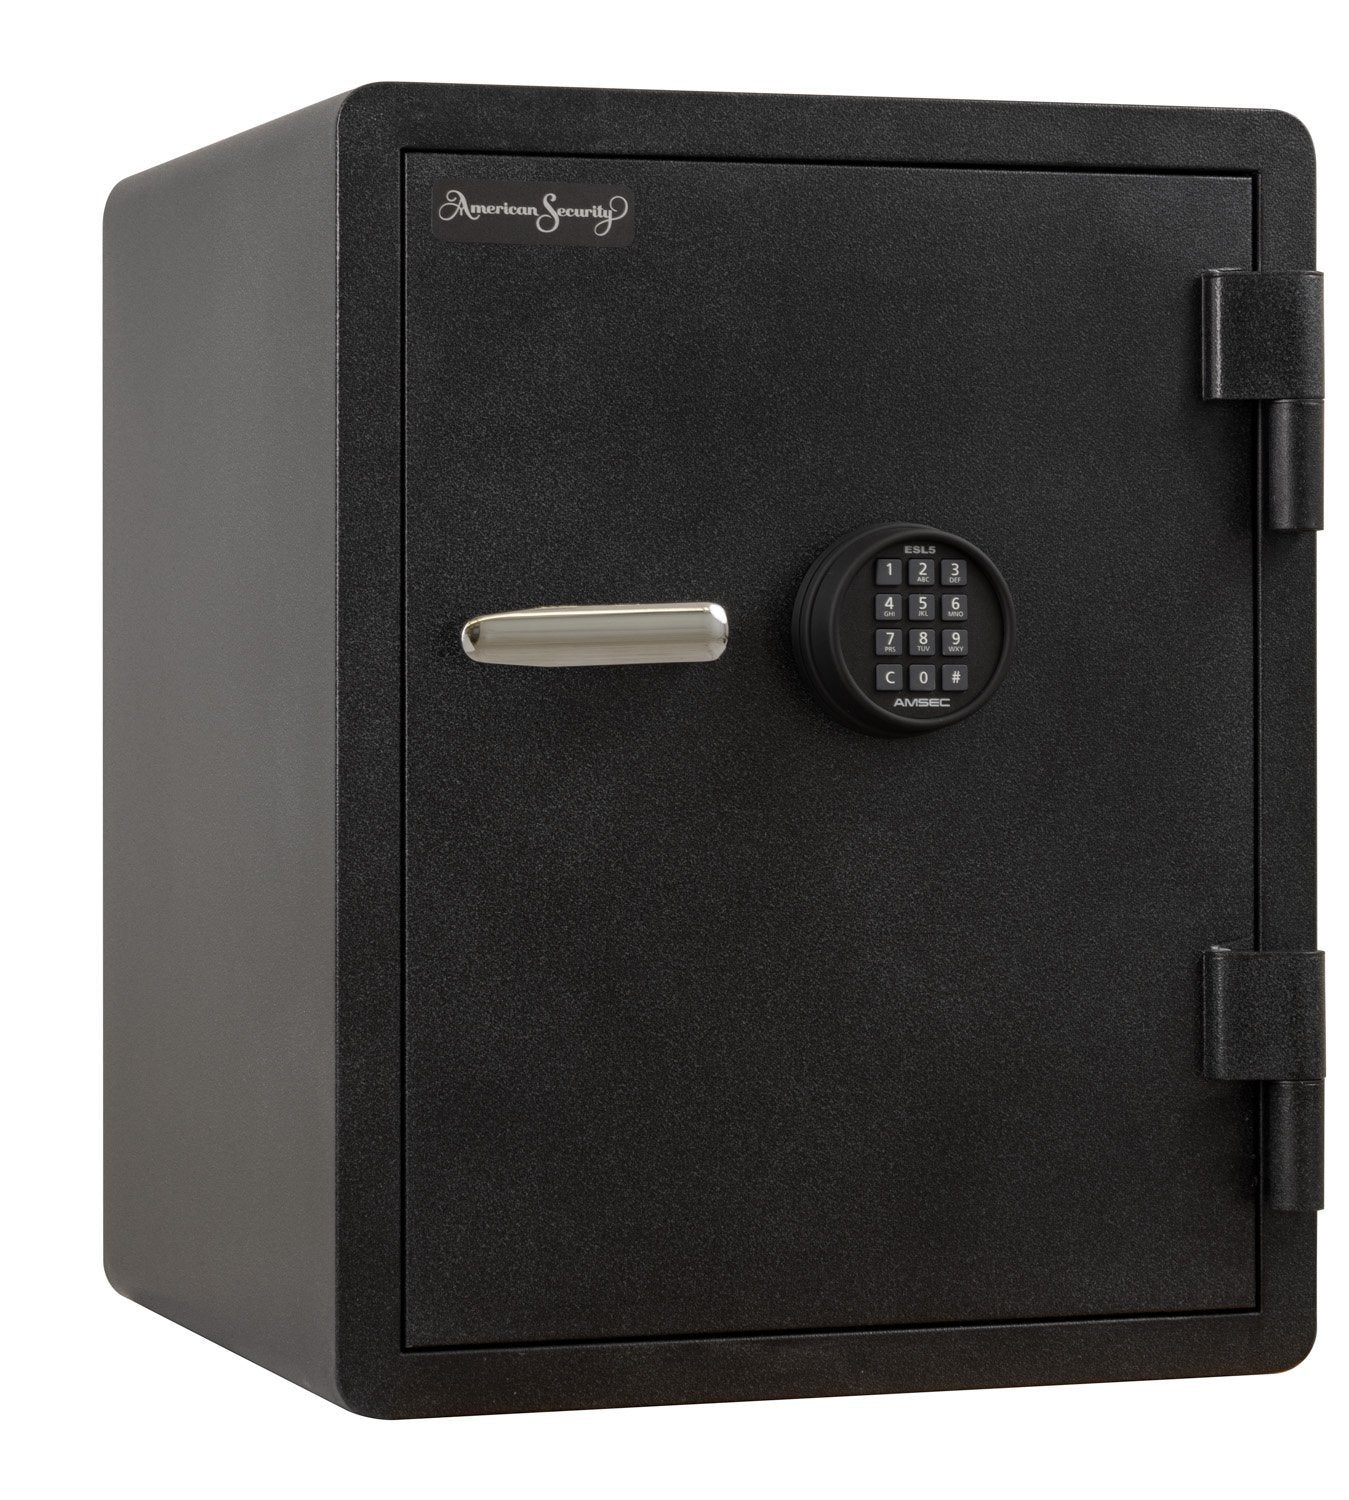 Fireproof Safes & Waterproof Chests - AMSEC FS1814E5 Residential Fire Safe